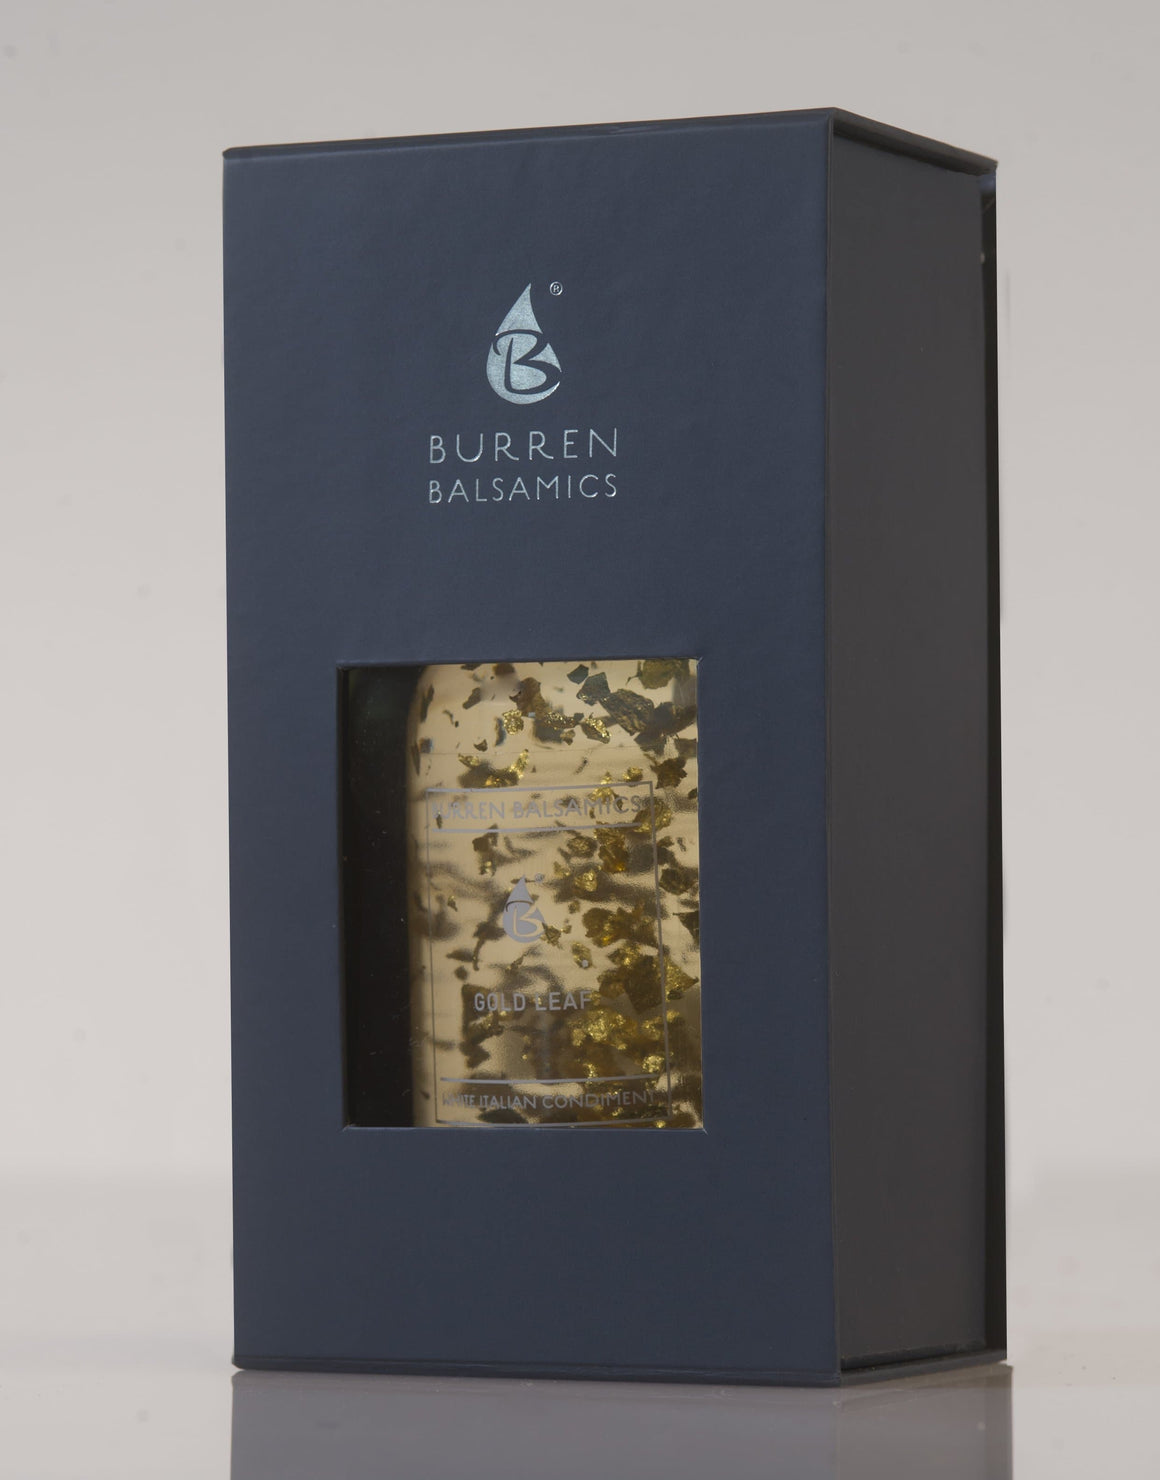 Burren Balsamics - 24 Carat Gold Leaf White Italian Balsamic Vinegar 200ml - SoulBia